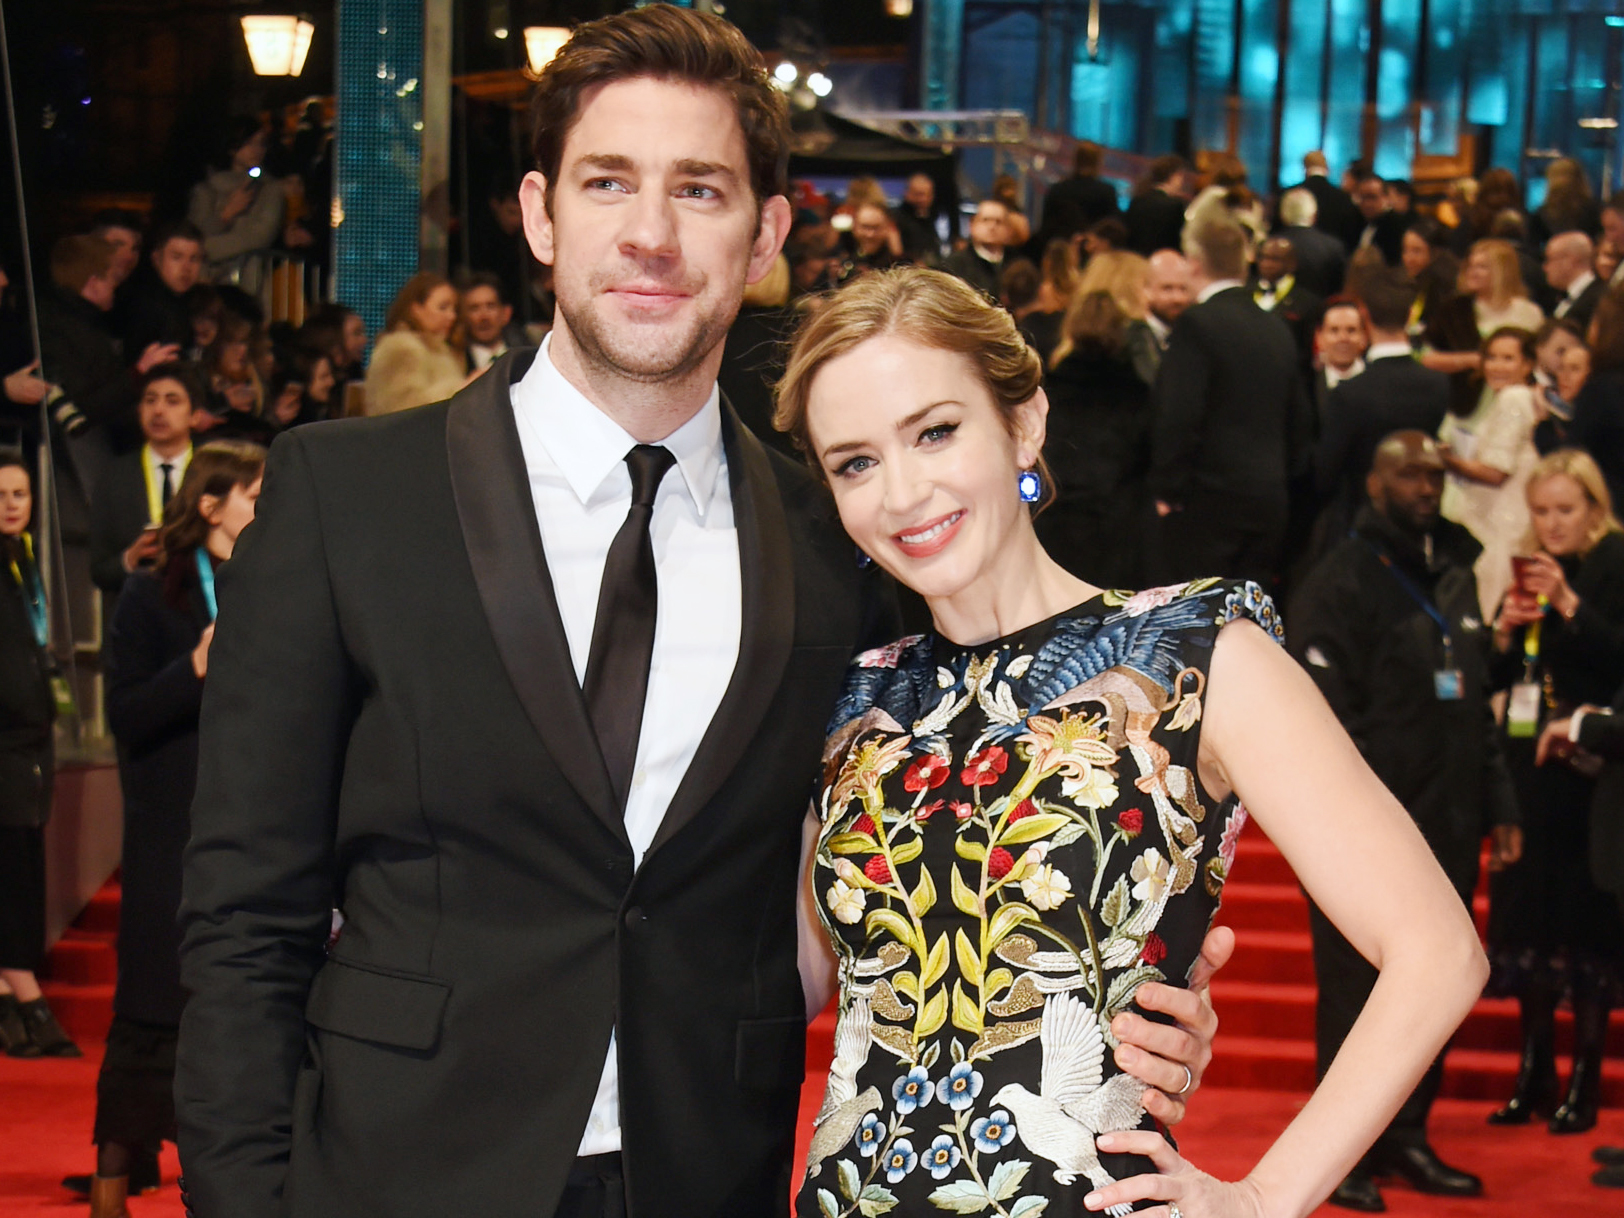 This Is What Saved Emily Blunt's Relationship with John Krasinski